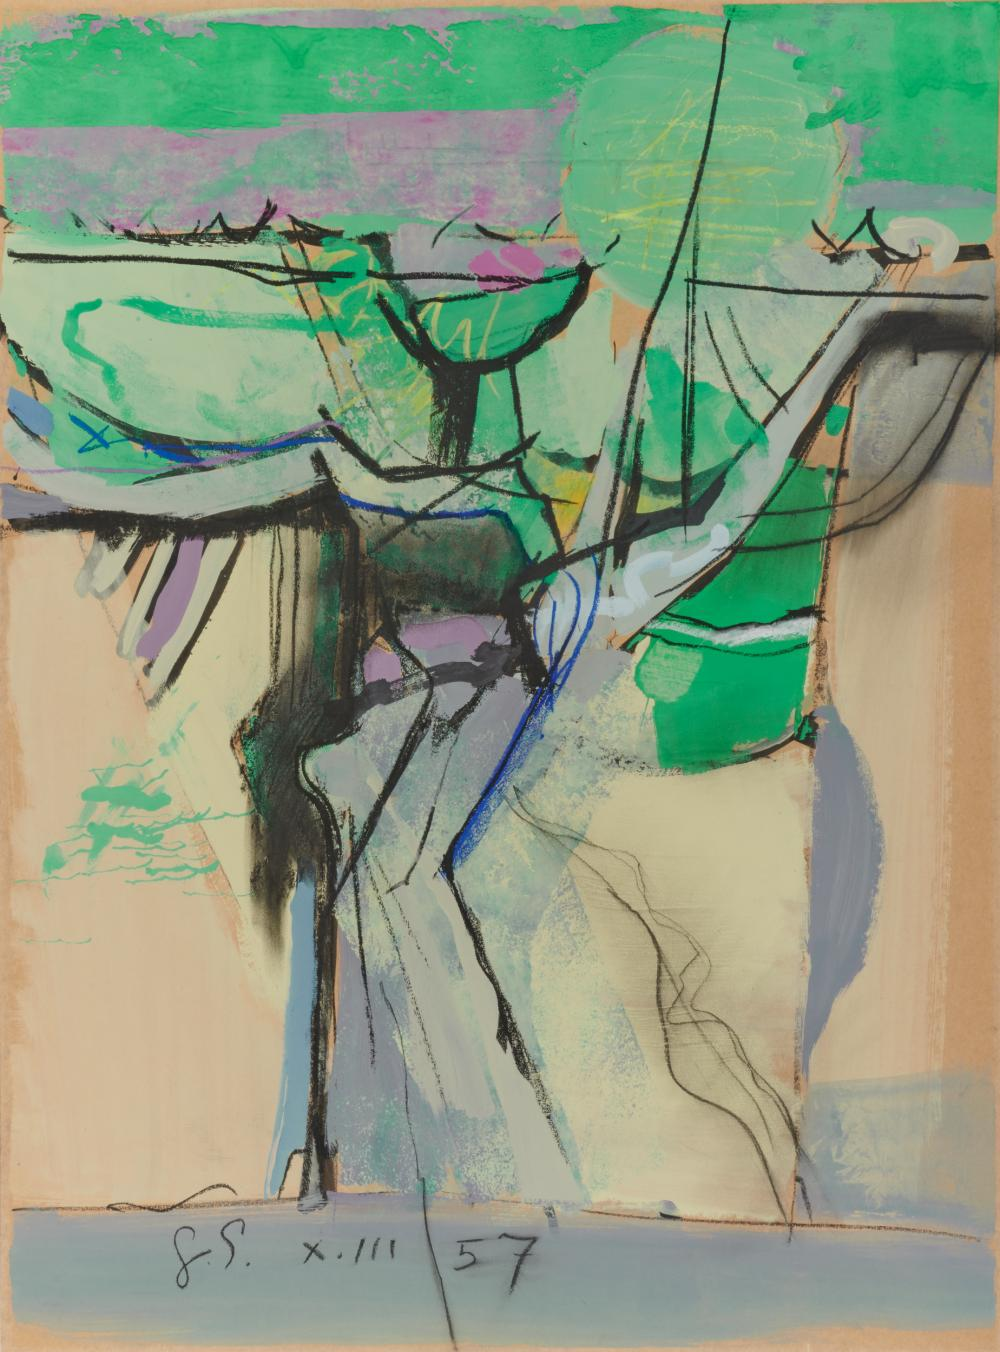 GRAHAM VIVIAN SUTHERLAND, (British, 1903-1980), Untitled, 1957, gouache, watercolor, and crayon on paper, sight: 37 x 27 1/2 in., frame: 47 1/2 x 38 in.